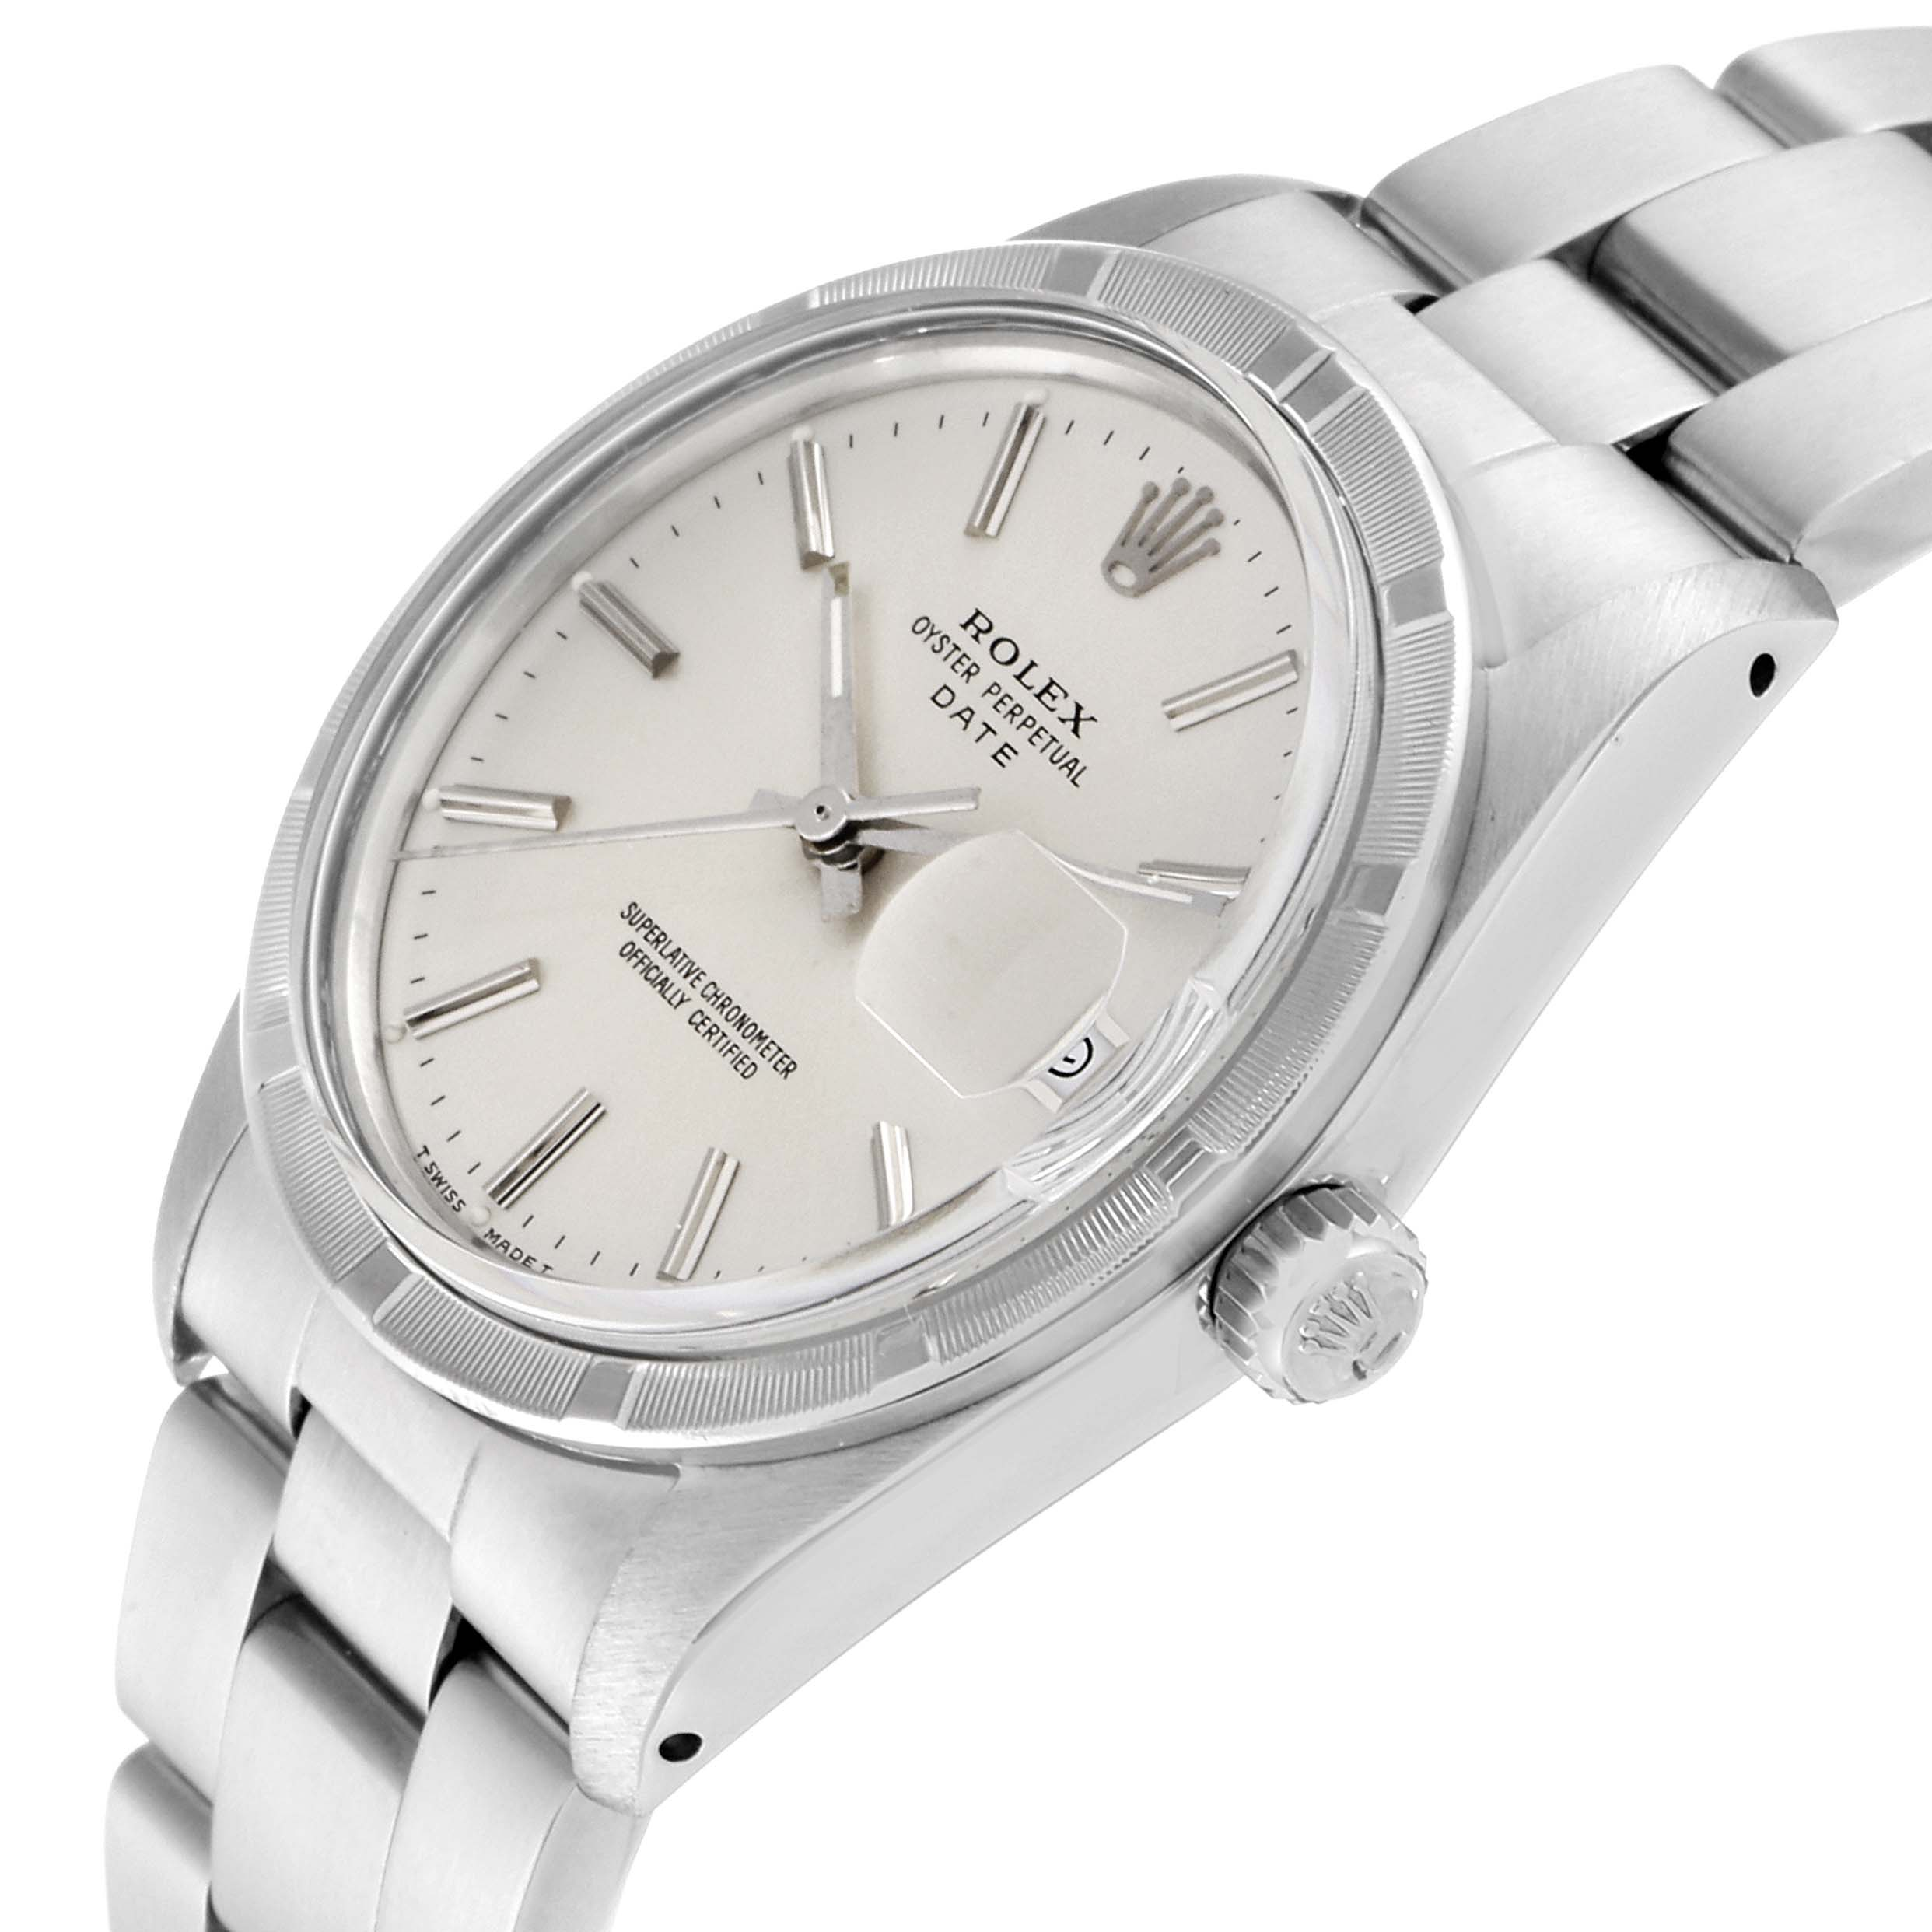 Rolex Date Stainless Steel Silver Dial Vintage Mens Watch 15010 SwissWatchExpo